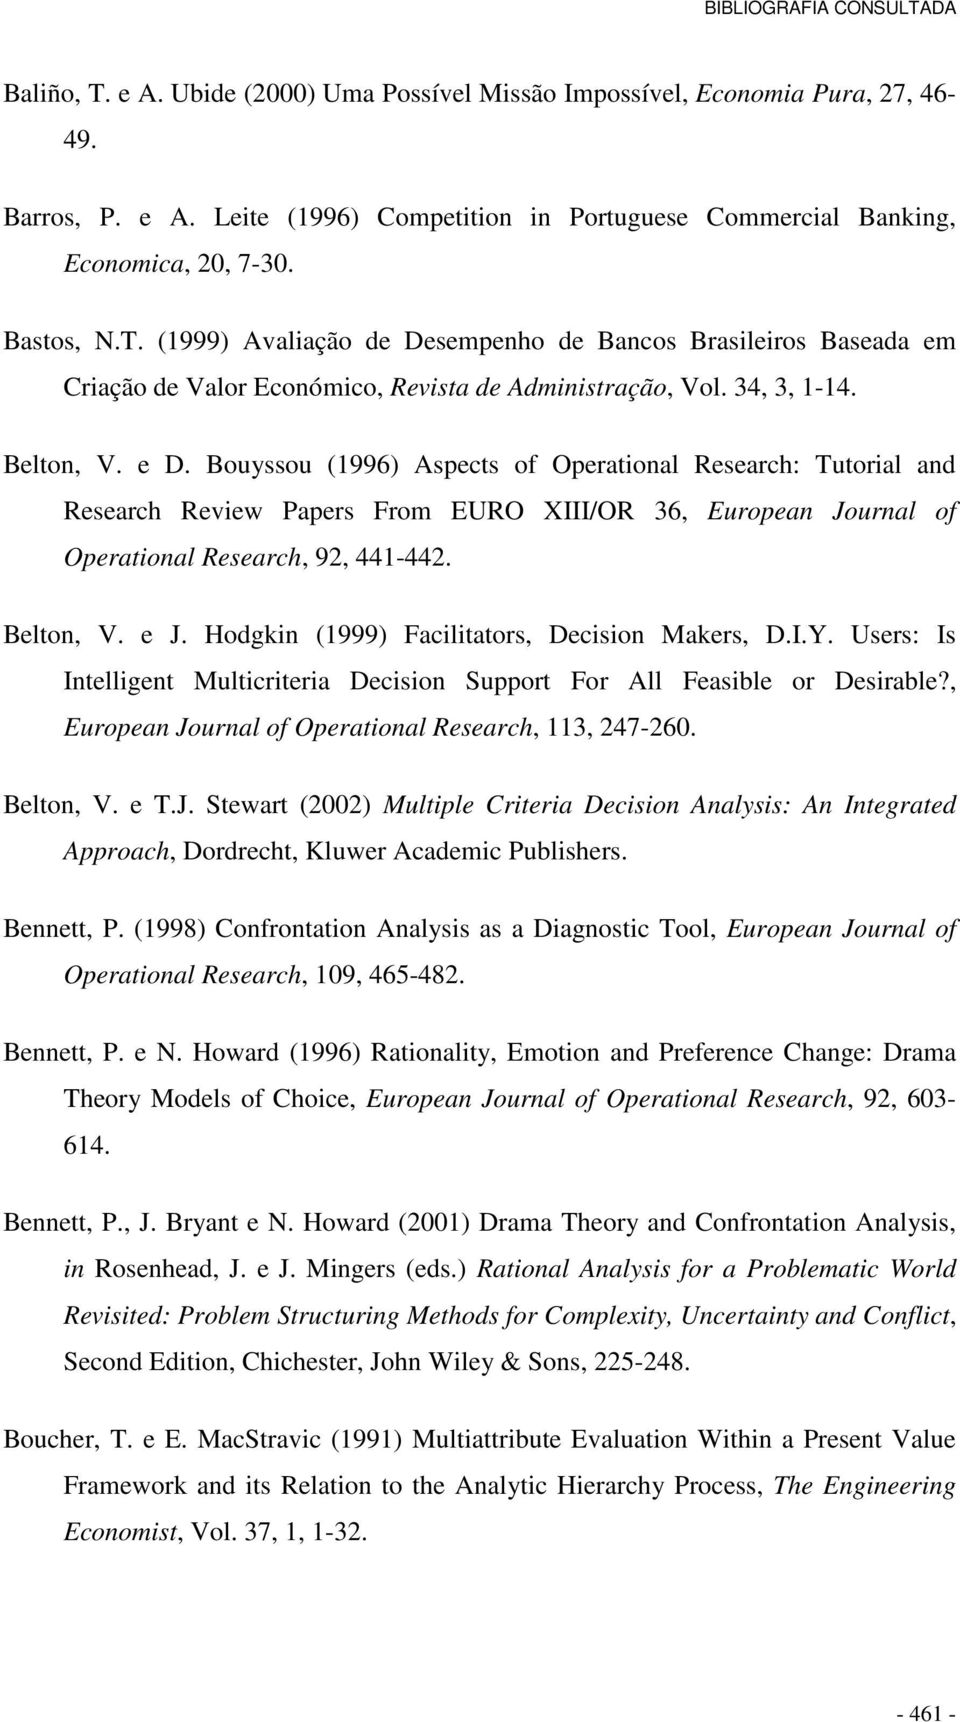 Belton, V. e J. Hodgkin (1999) Facilitators, Decision Makers, D.I.Y. Users: Is Intelligent Multicriteria Decision Support For All Feasible or Desirable?